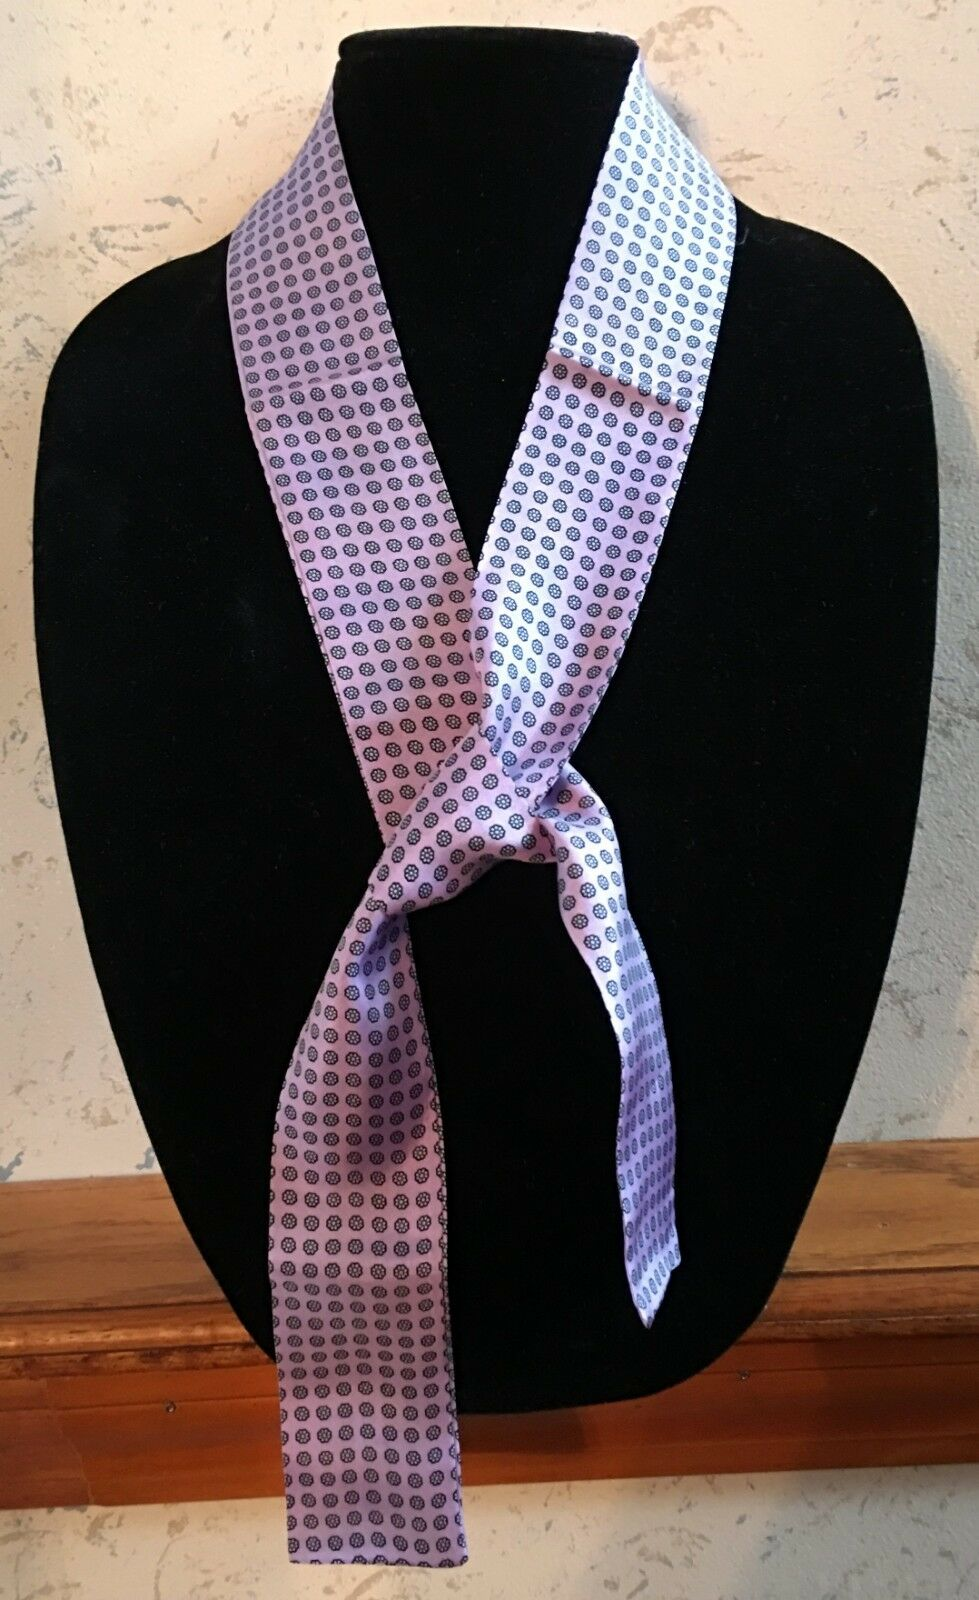 Women's 100% Silk Tie Accessory Package Of 12 Ties In 6 Colors New Old Stock